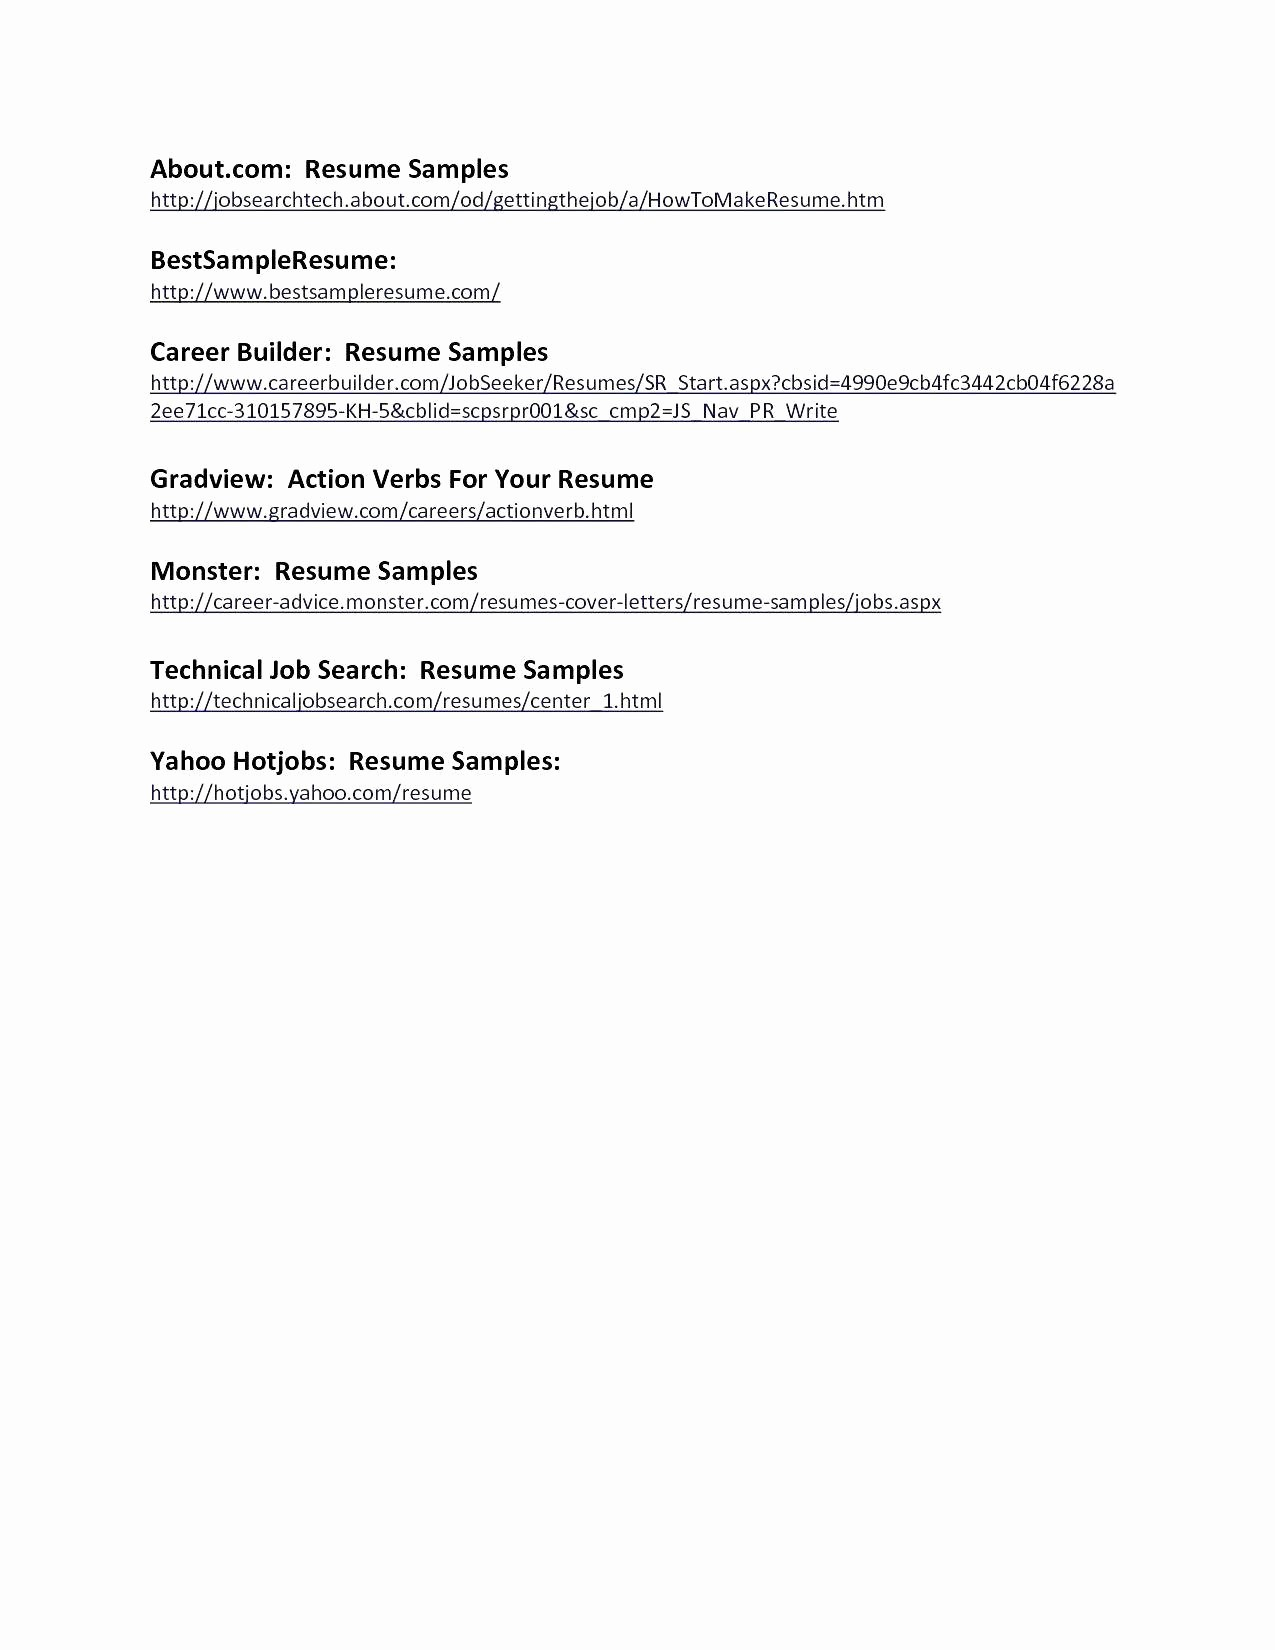 Resume Sample for College Student - Resume Example for College Student Refrence Good Resume for College